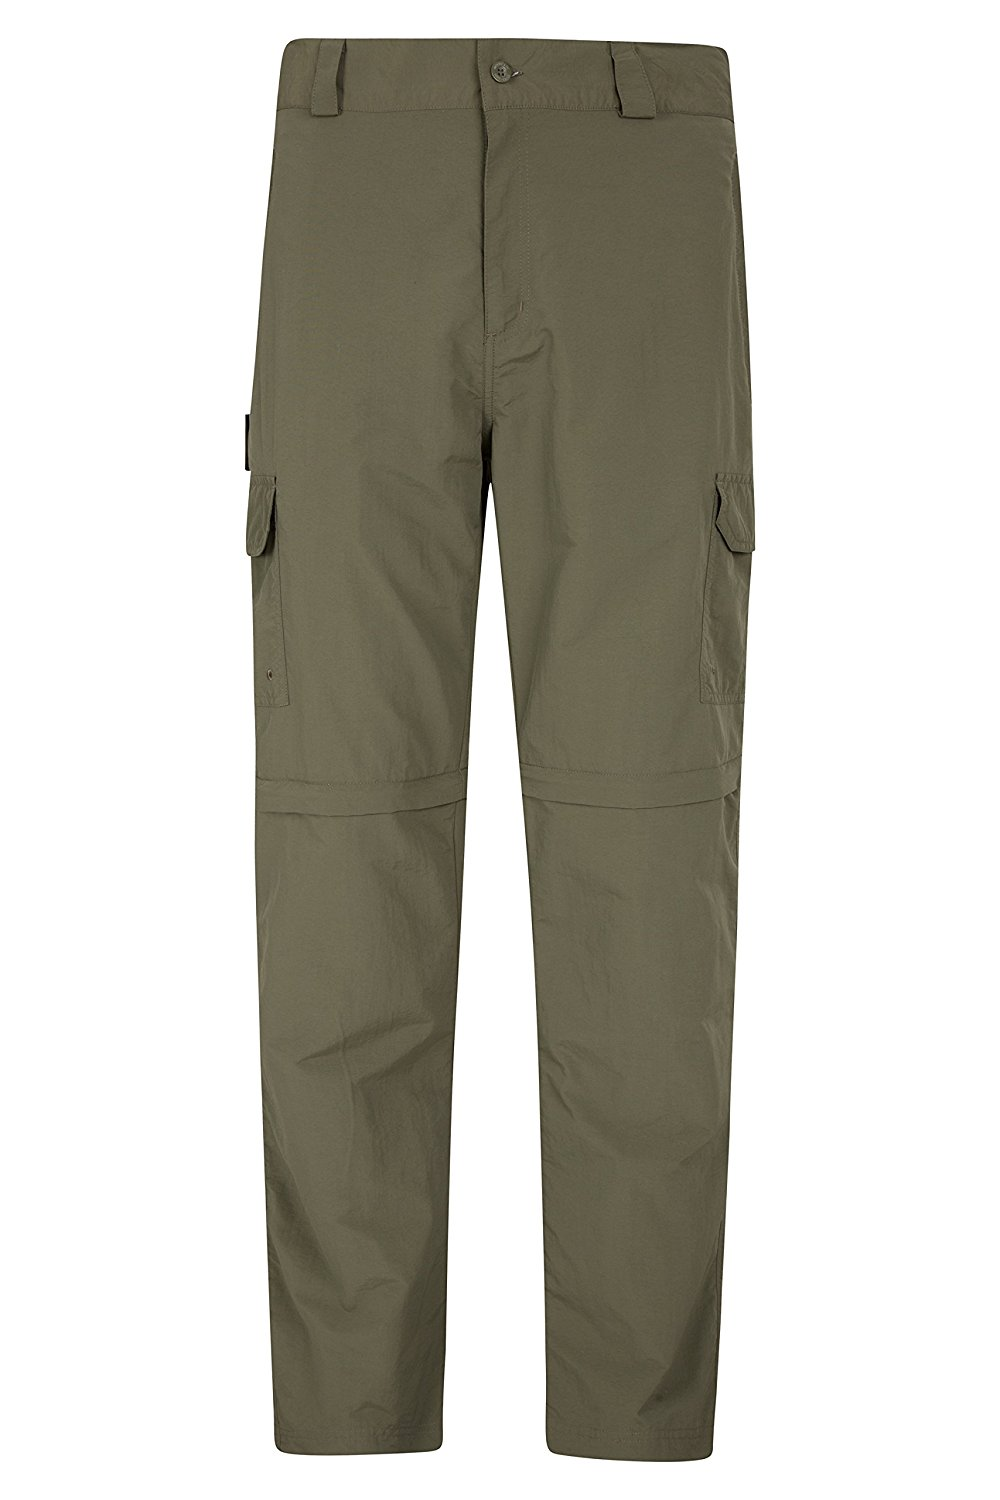 a8f088a9b62 Get Quotations · Mountain Warehouse Explore Convertible Mens Trousers -  Summer Pants